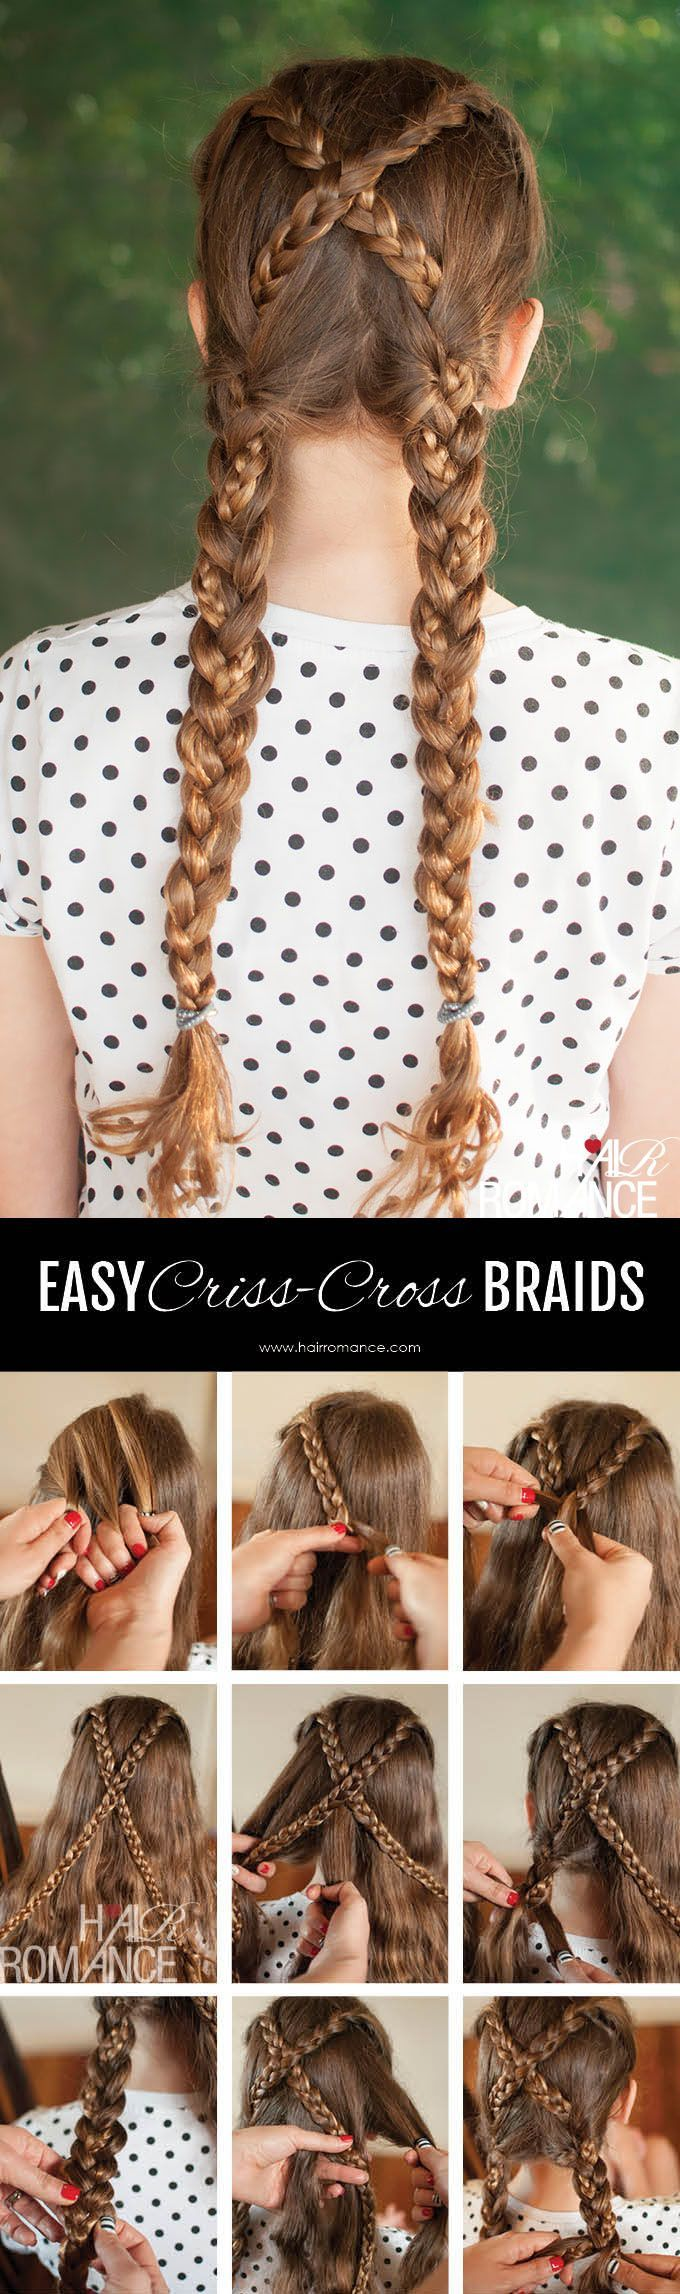 Hair Romance - Back to school hair - criss cross braids hairstyle tutorial #frisuren schule, Back to school hairstyles - Criss cross braids tutorial - Hair Romance